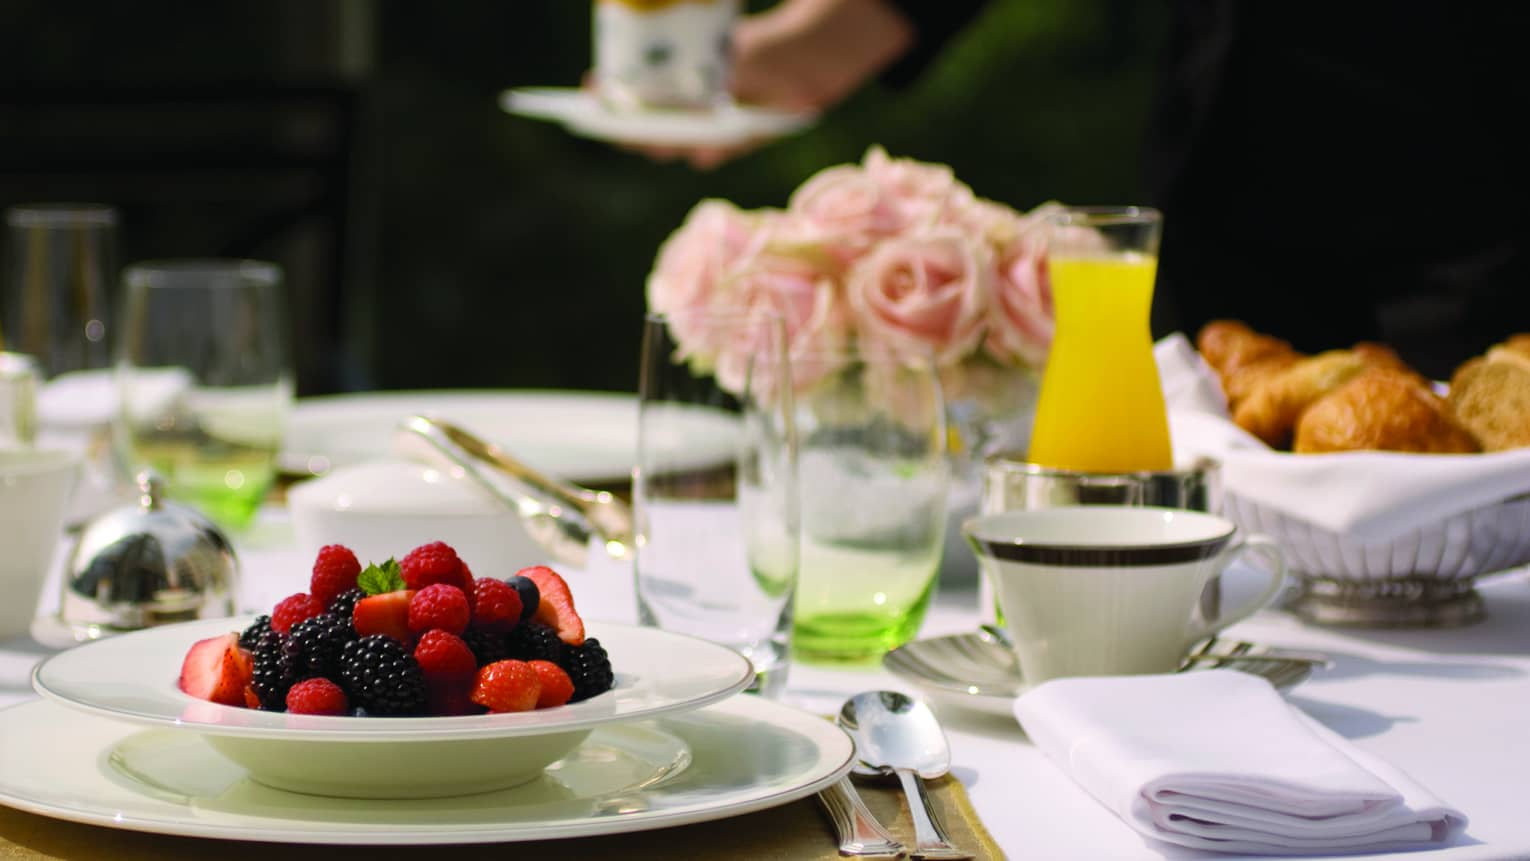 White bowl filled with fresh strawberries, blueberries and blackberries on table with glasses, orange juice, pink roses